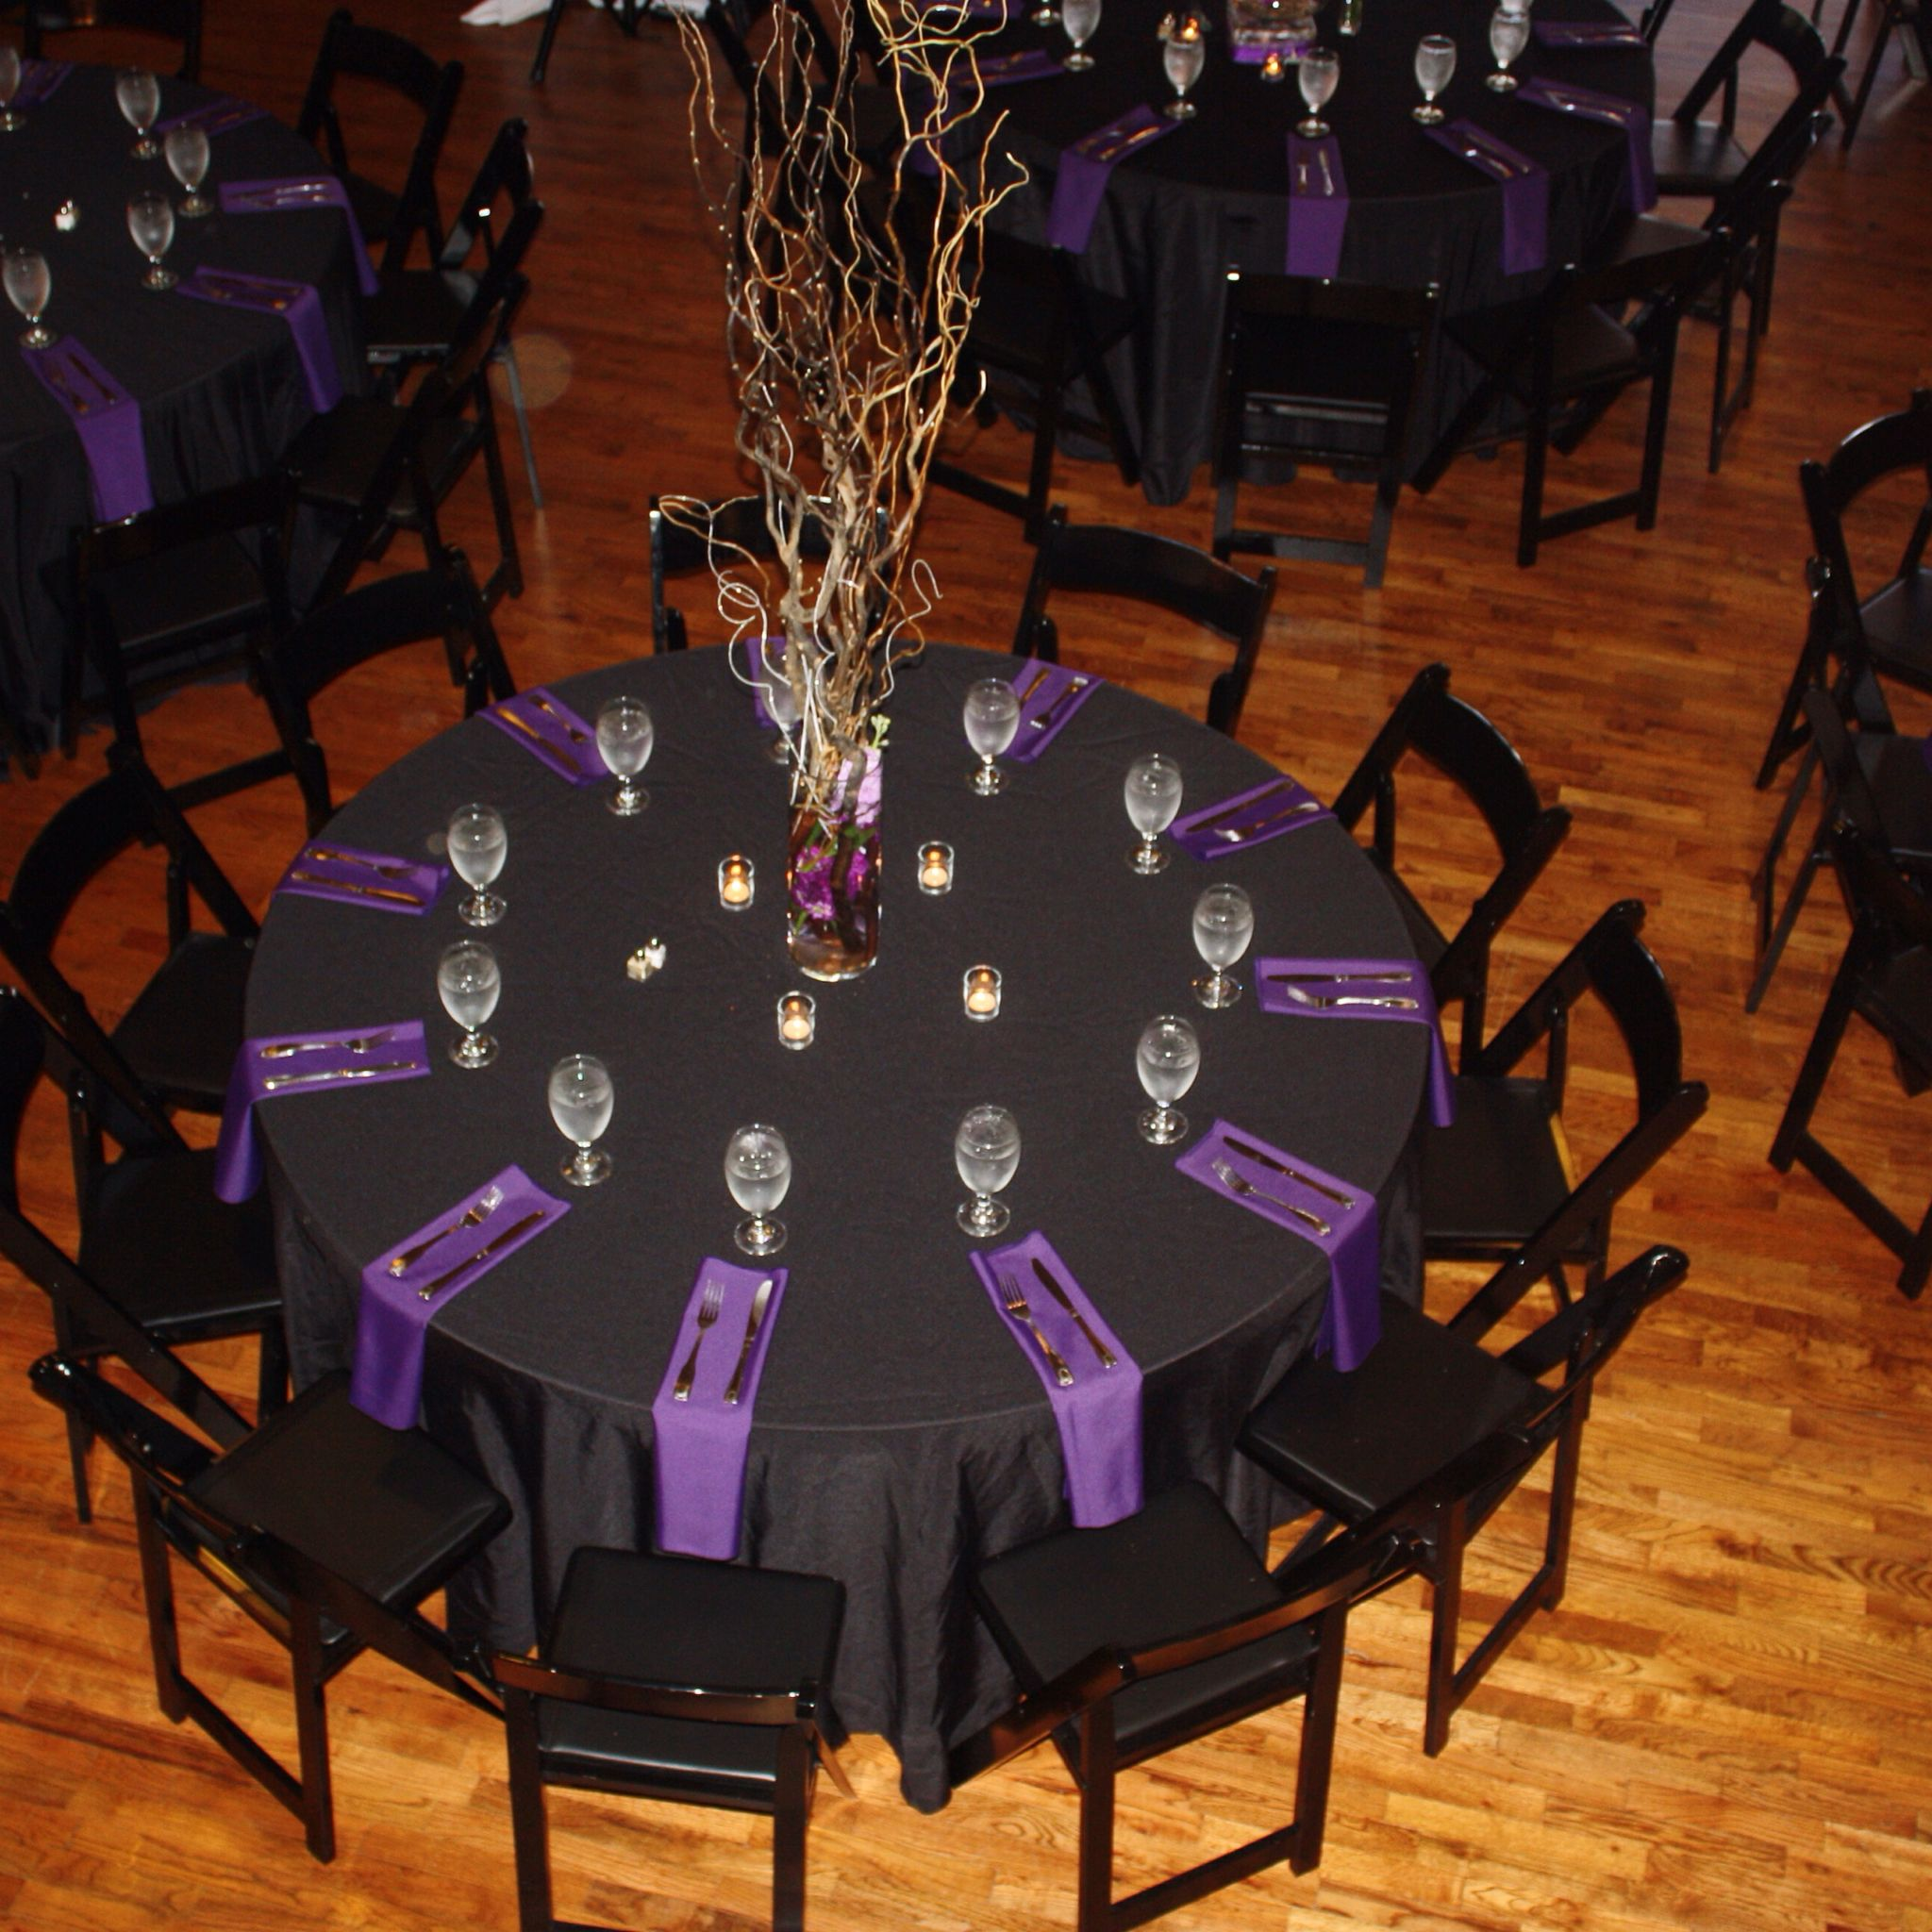 Black and purple table setting. & Black and purple table setting. | Table Settings | Pinterest ...